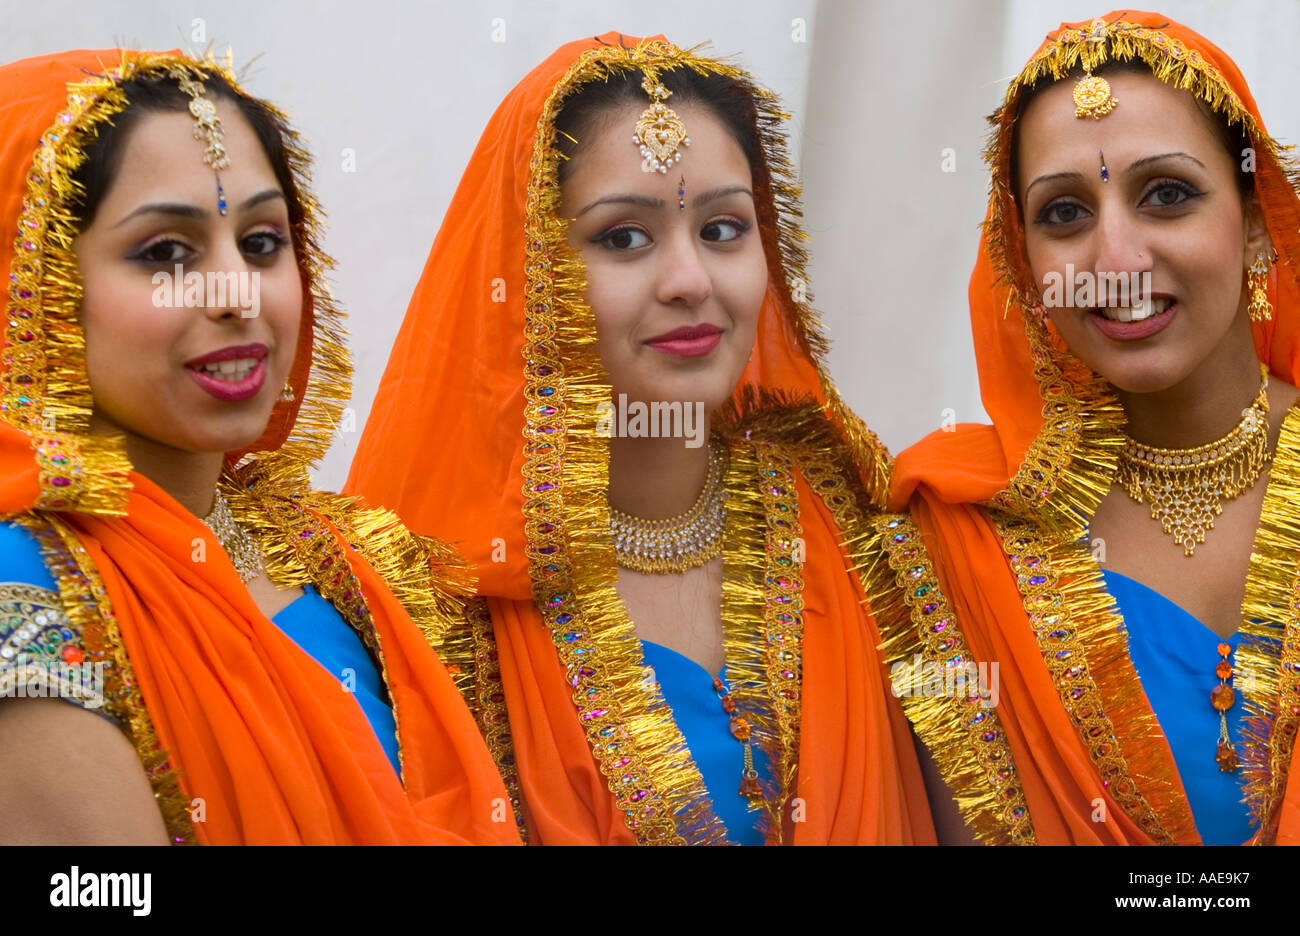 Sikh Women Stock Photos & Sikh Women Stock Images - Alamy